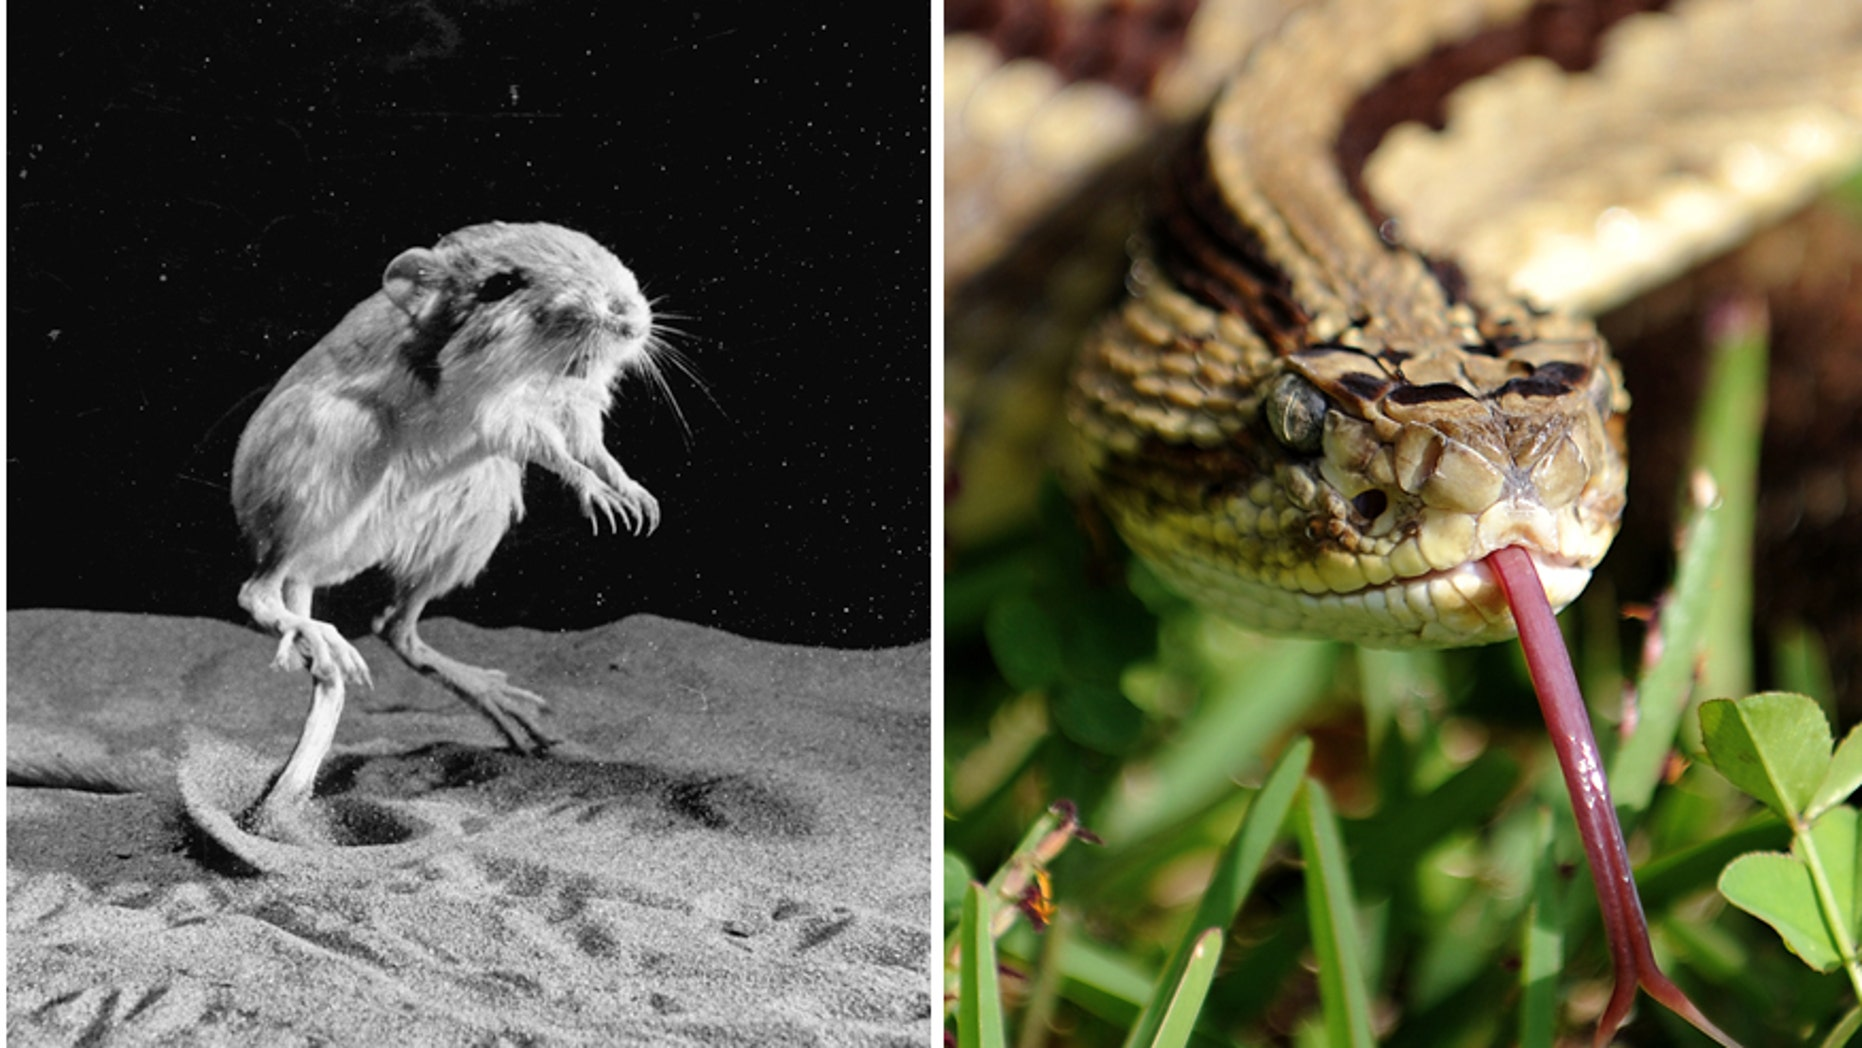 Images - Kangaroo rat in the middle jump / A poisonous neotropical rattlesnake (Crotalus simus)